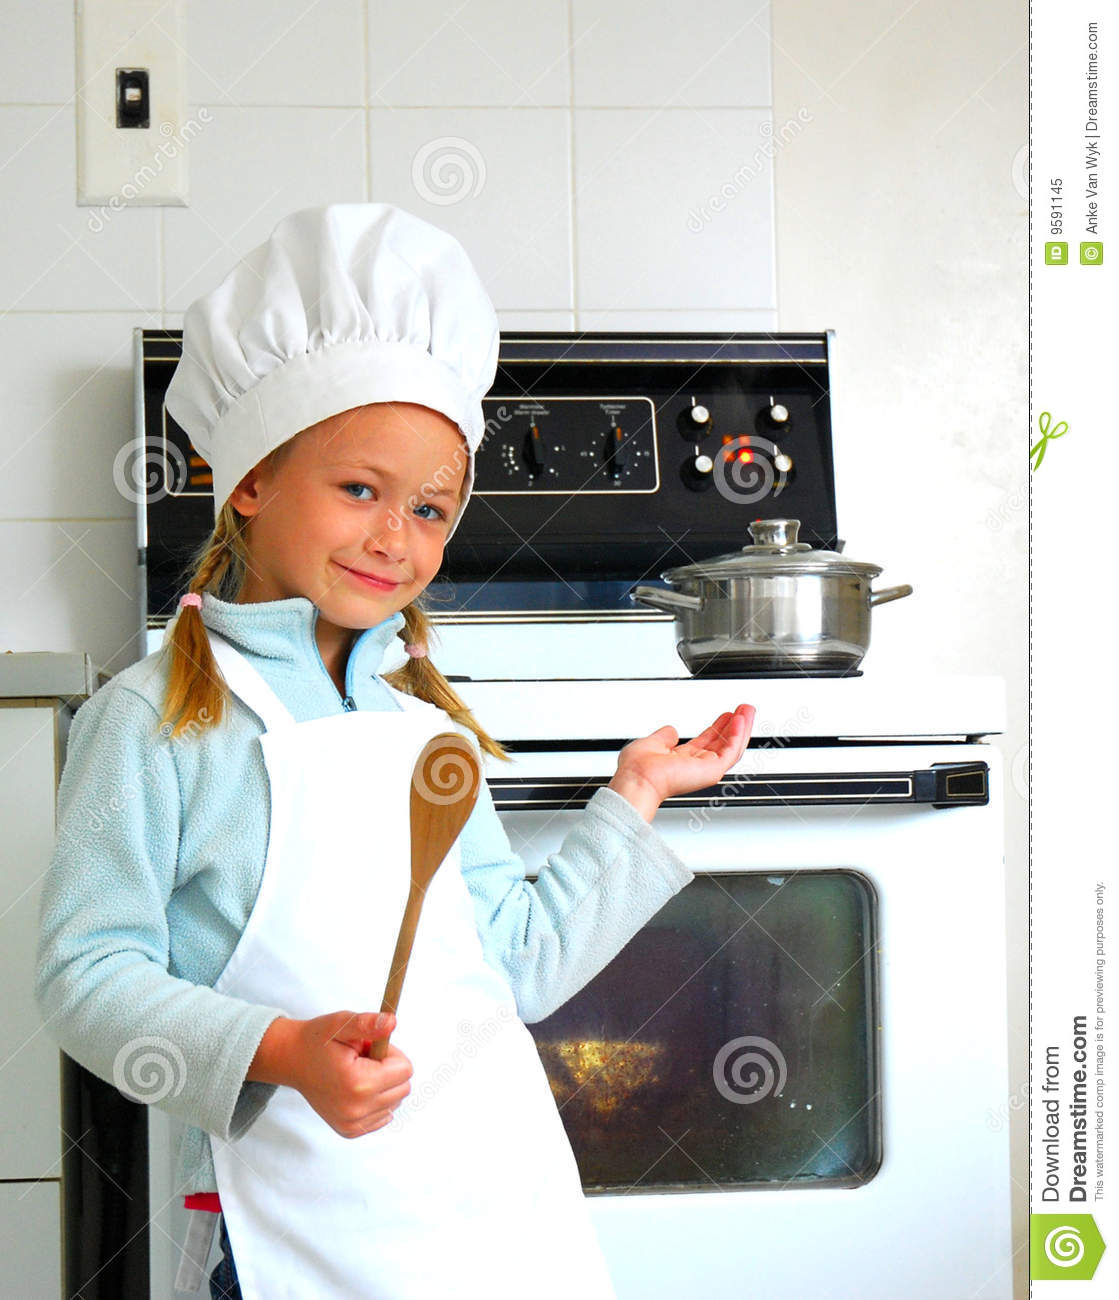 kitchen chief home depot sink faucet child chef cooking royalty free stock photo - image: 9591145